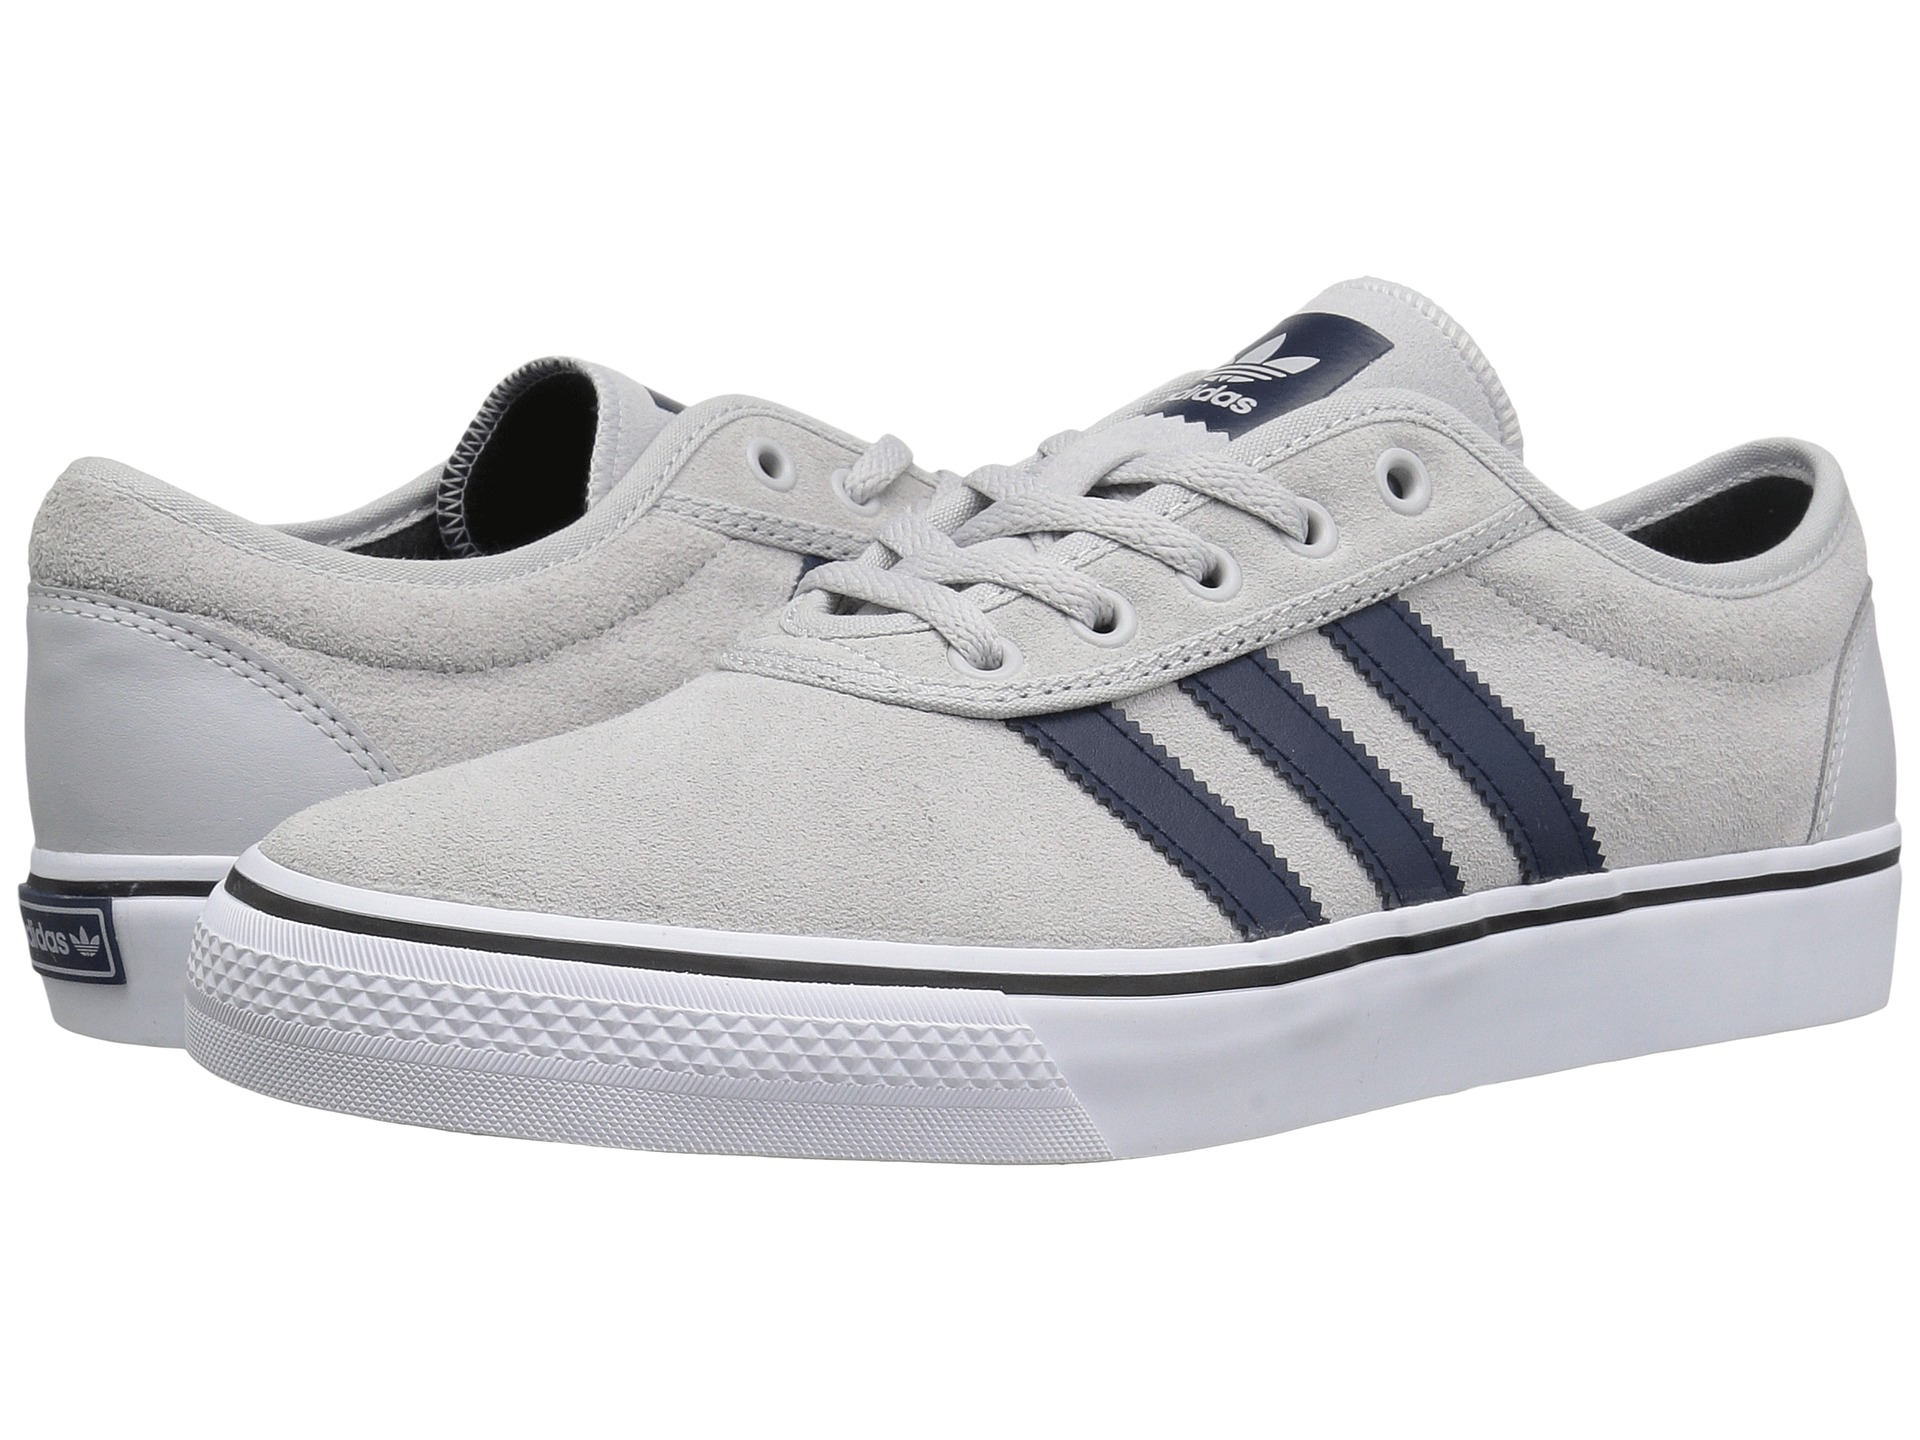 adidas Skateboarding Adi-Ease at 6pm.com